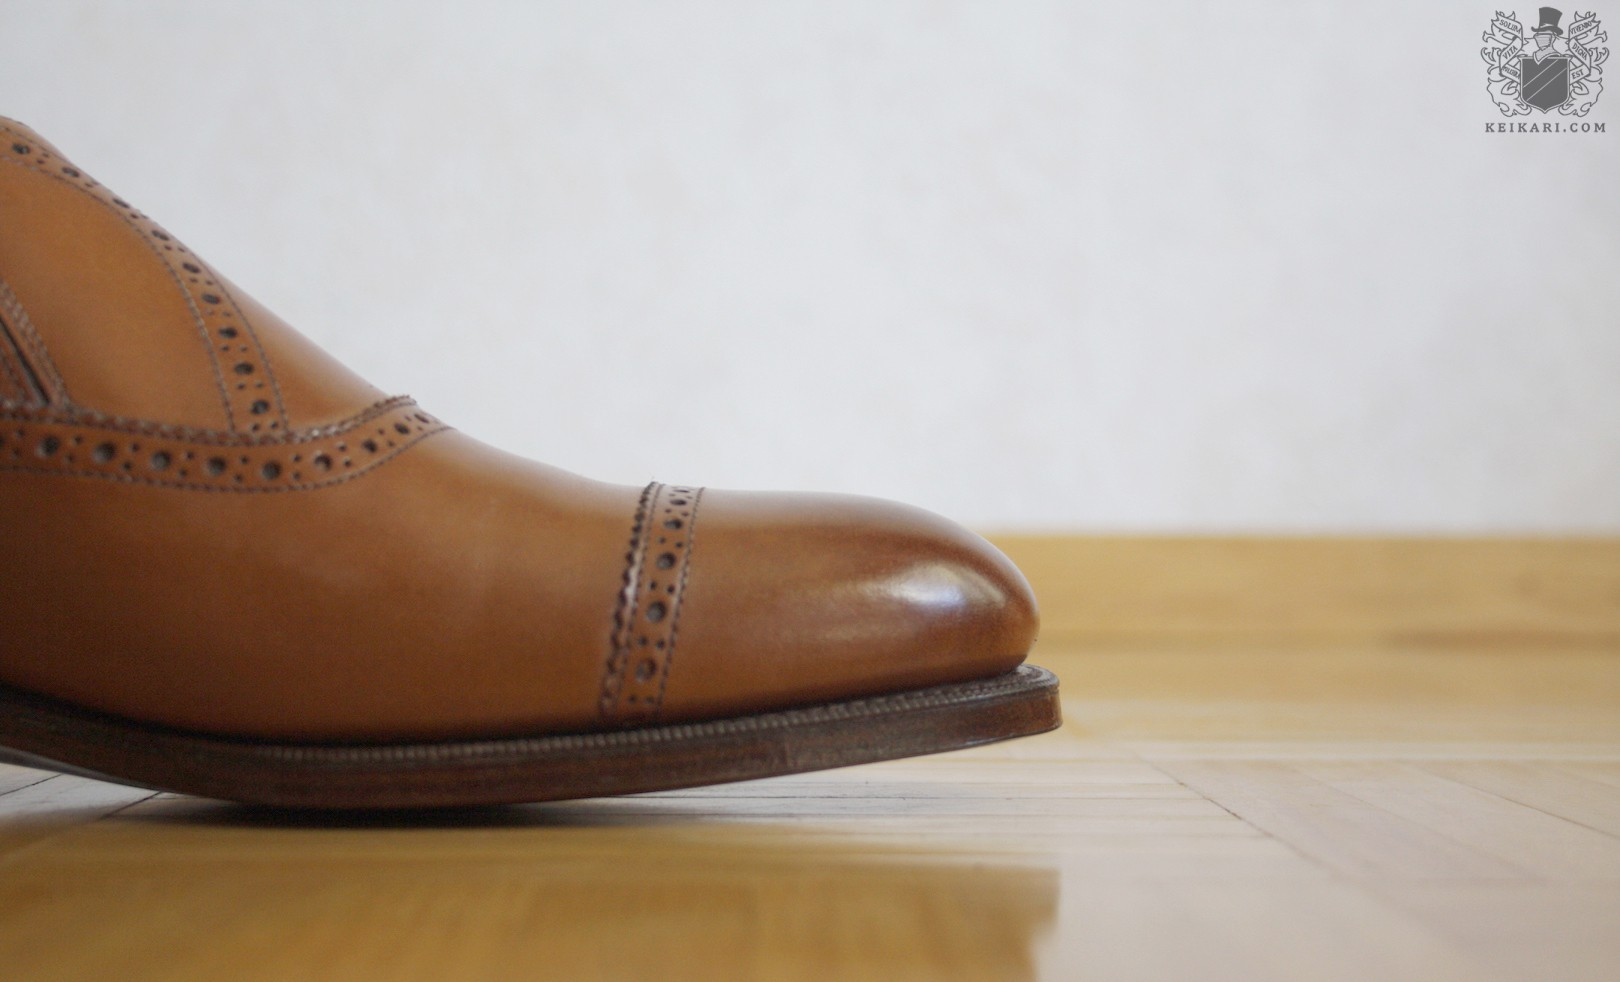 edward_green_kibworth_side_elastic_shoes_at_keikari_dot_com09